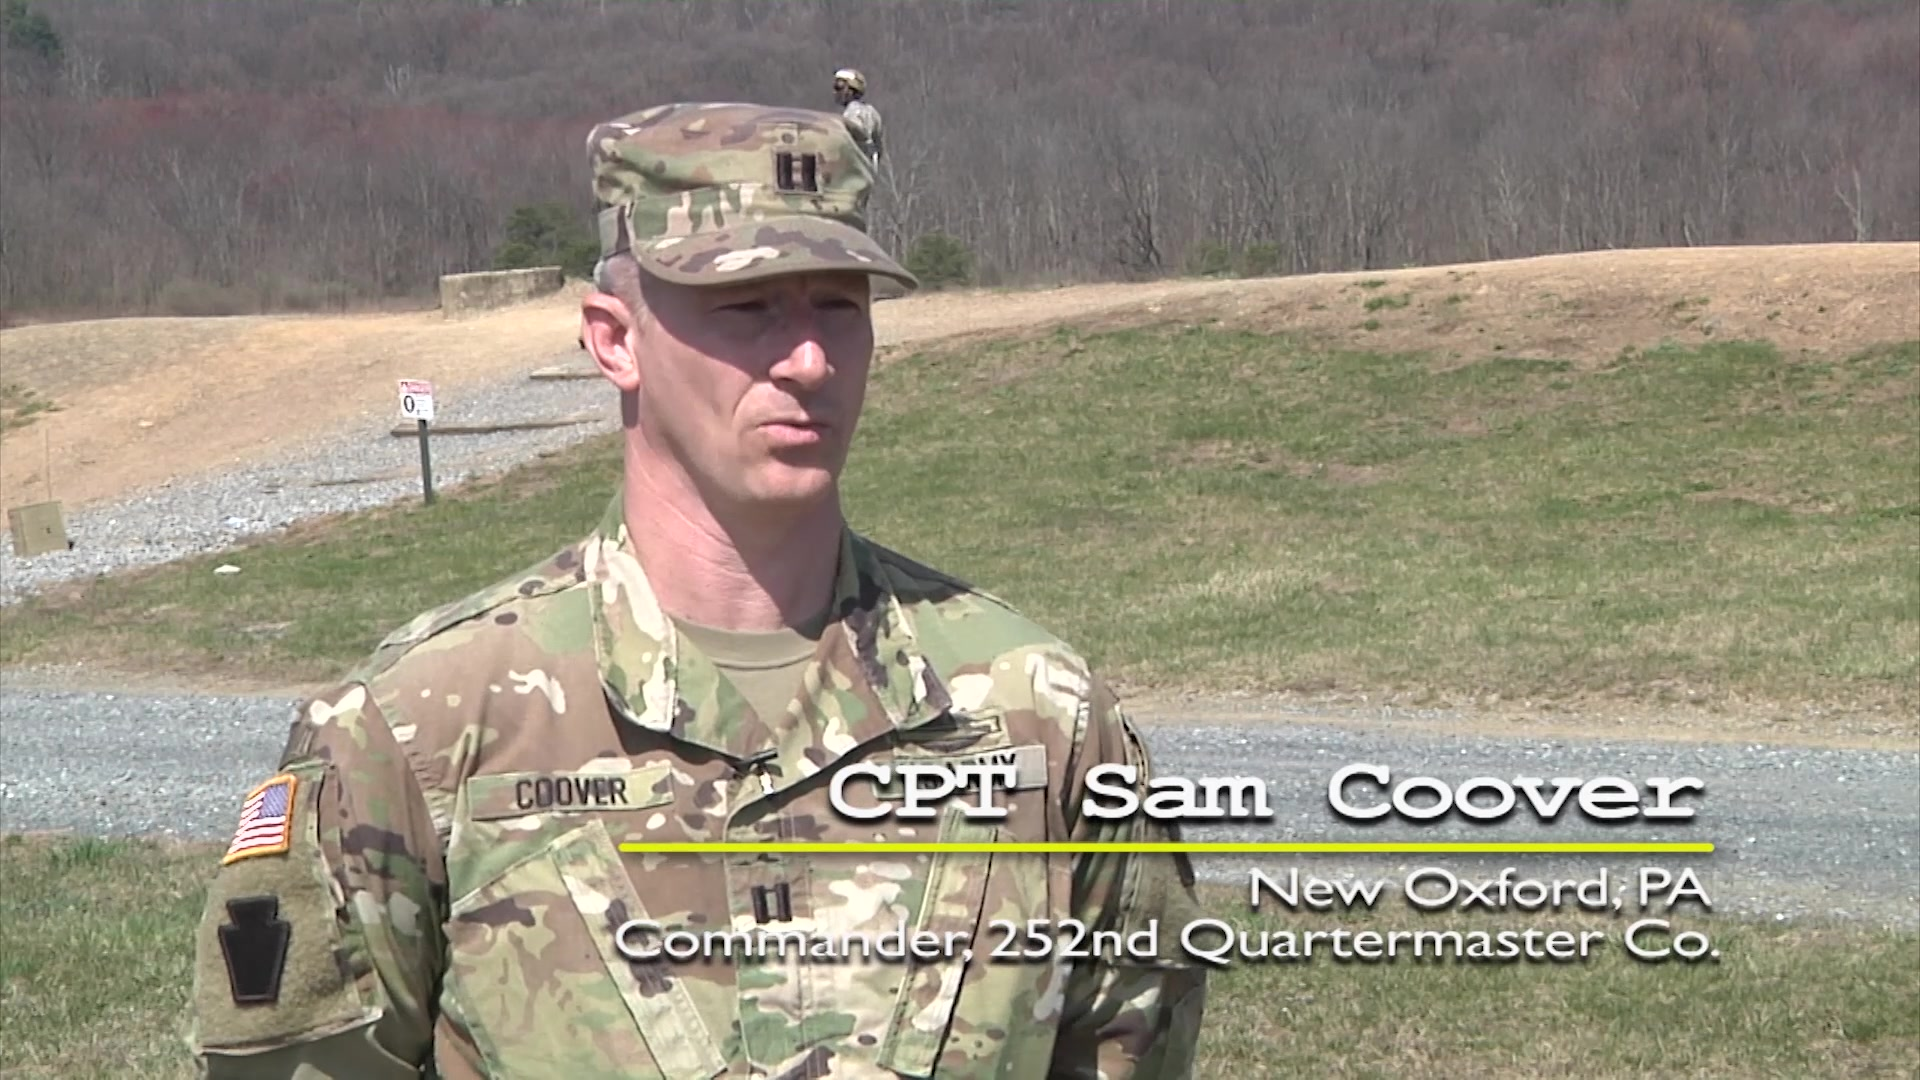 Capt. Sam Coover, commander of the 252nd Quartermaster Company, 728th Combat Support Sustainment Battalion, 213th Regional Support Group, Pennsylvania Army National Guard speaks on the relevancy and importance of individual weapons qualifications to the 252nd Quartermaster Co. in preparing Soldiers for combat scenarios.